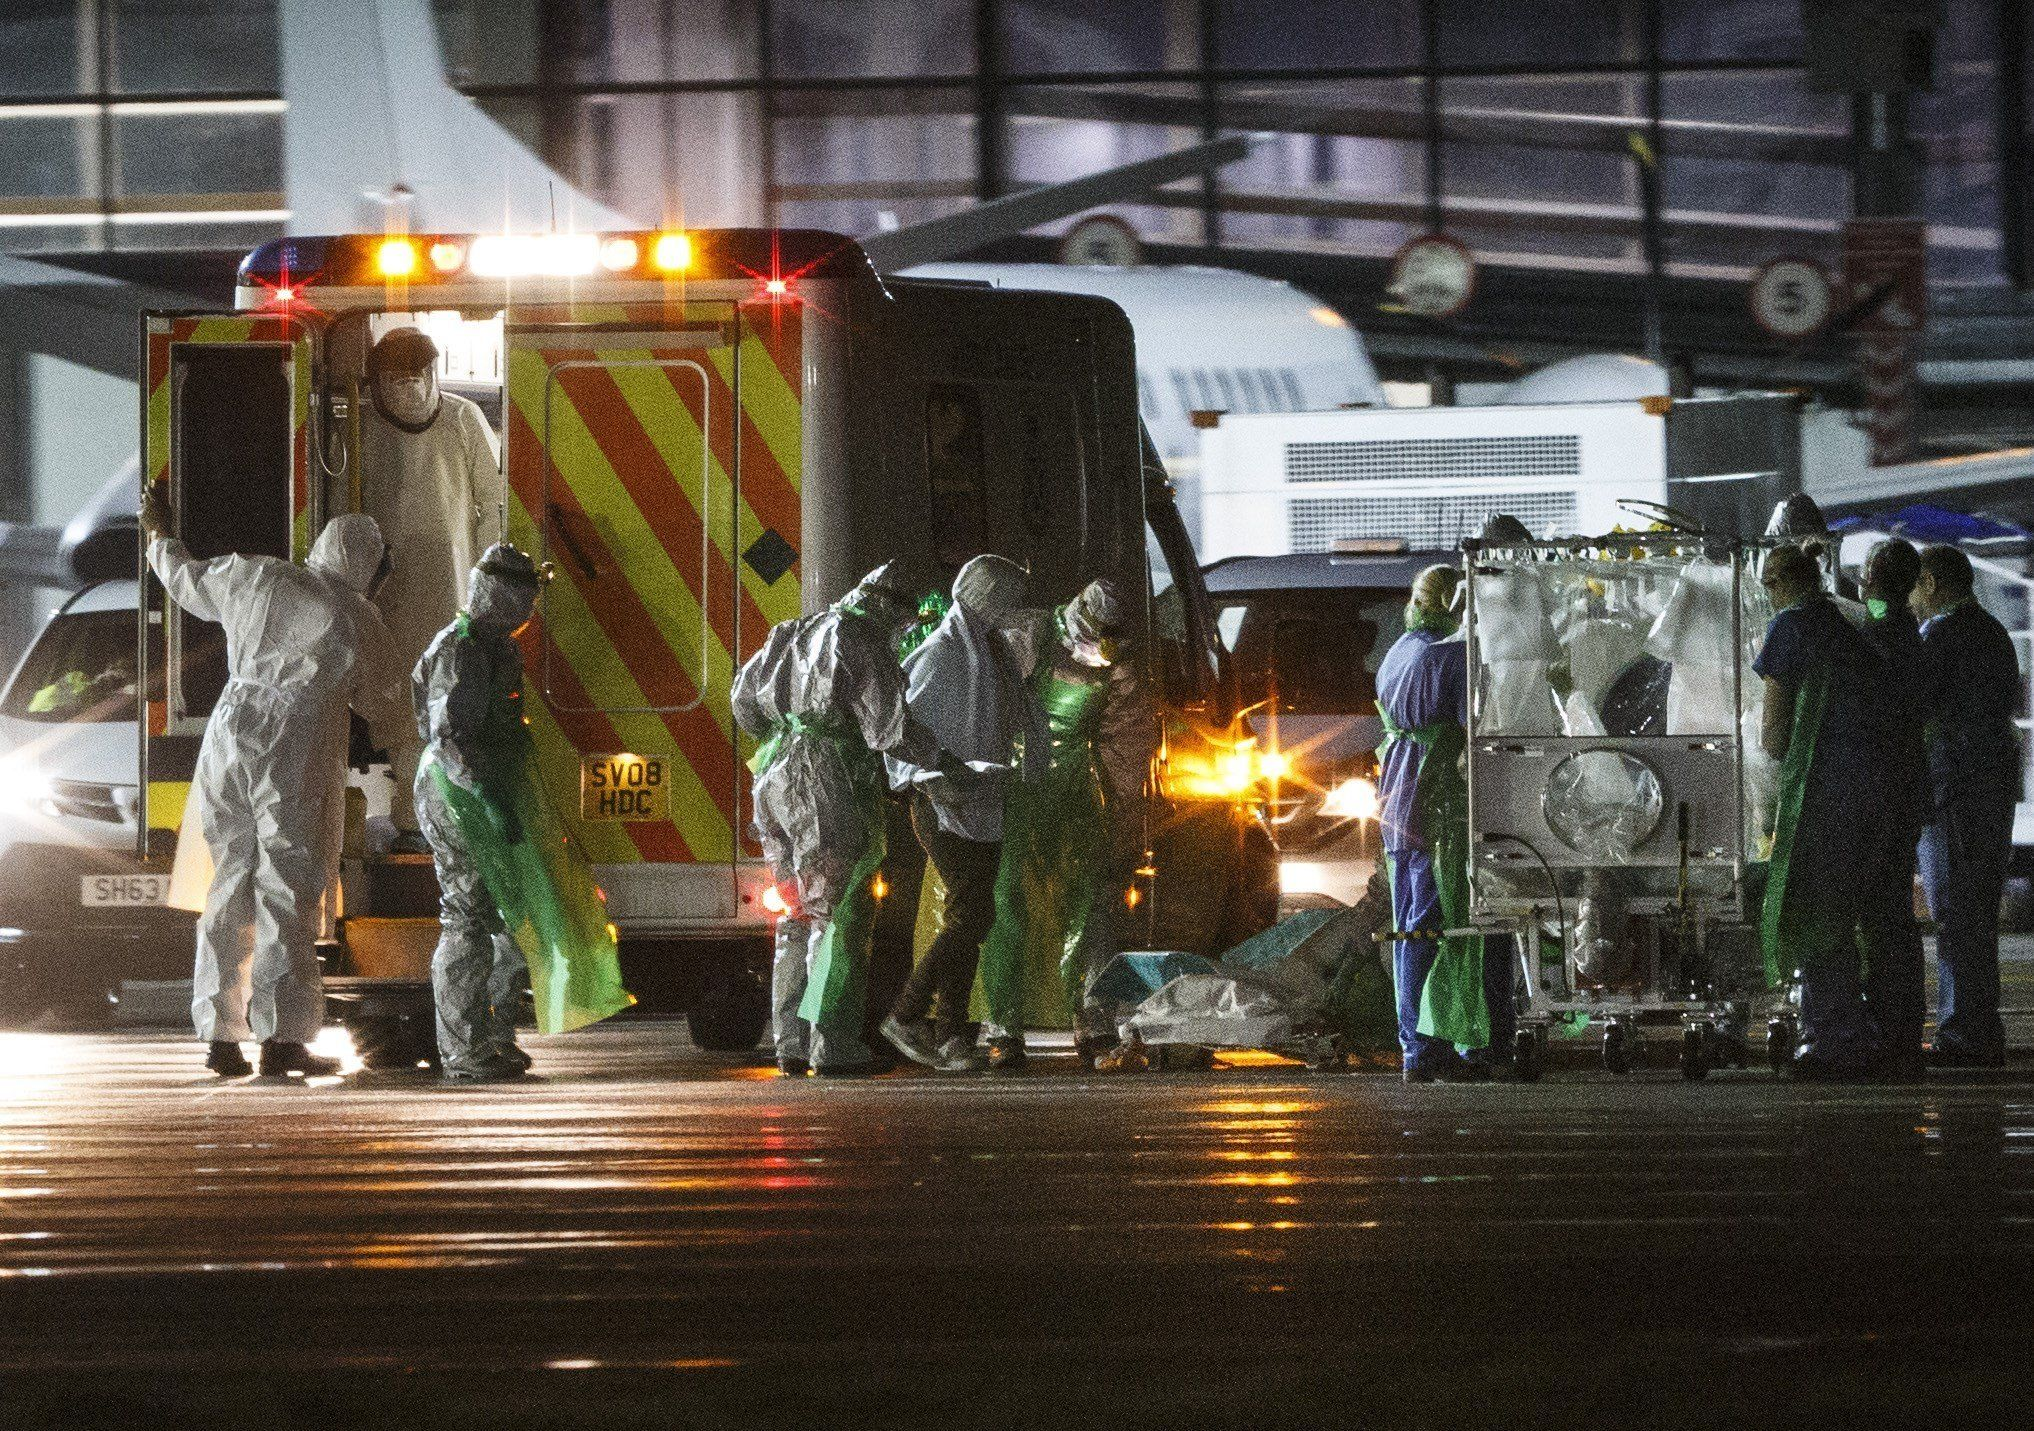 """<span class='image-component__caption' itemprop=""""caption"""">(FILES) A file photo taken on December 30, 2014, shows Scottish healthcare worker Pauline Cafferkey (C), who was diagnosed with Ebola after returning to Scotland from Sierra Leone, as she is escorted by medical personnel from an ambulance to a quarantine tent trolley (R), before being wheeled into a Hercules Transport plane at Glasgow International Airport, bound for The Royal Free hospital in London. British nurse Pauline Cafferkey who was successfully treated in January 2015 after contracting Ebola in Sierra Leone is now 'critically ill' due to a resurgence of the virus, the hospital treating her said on October 14, 2015. 'We are sad to announce that Pauline Cafferkey's condition has deteriorated and she is now critically ill. Pauline is being treated for Ebola in the high-level isolation unit at the Royal Free Hospital,' it said in a statement. AFP PHOTO / STR (Photo credit should read -/AFP/Getty Images)</span>"""